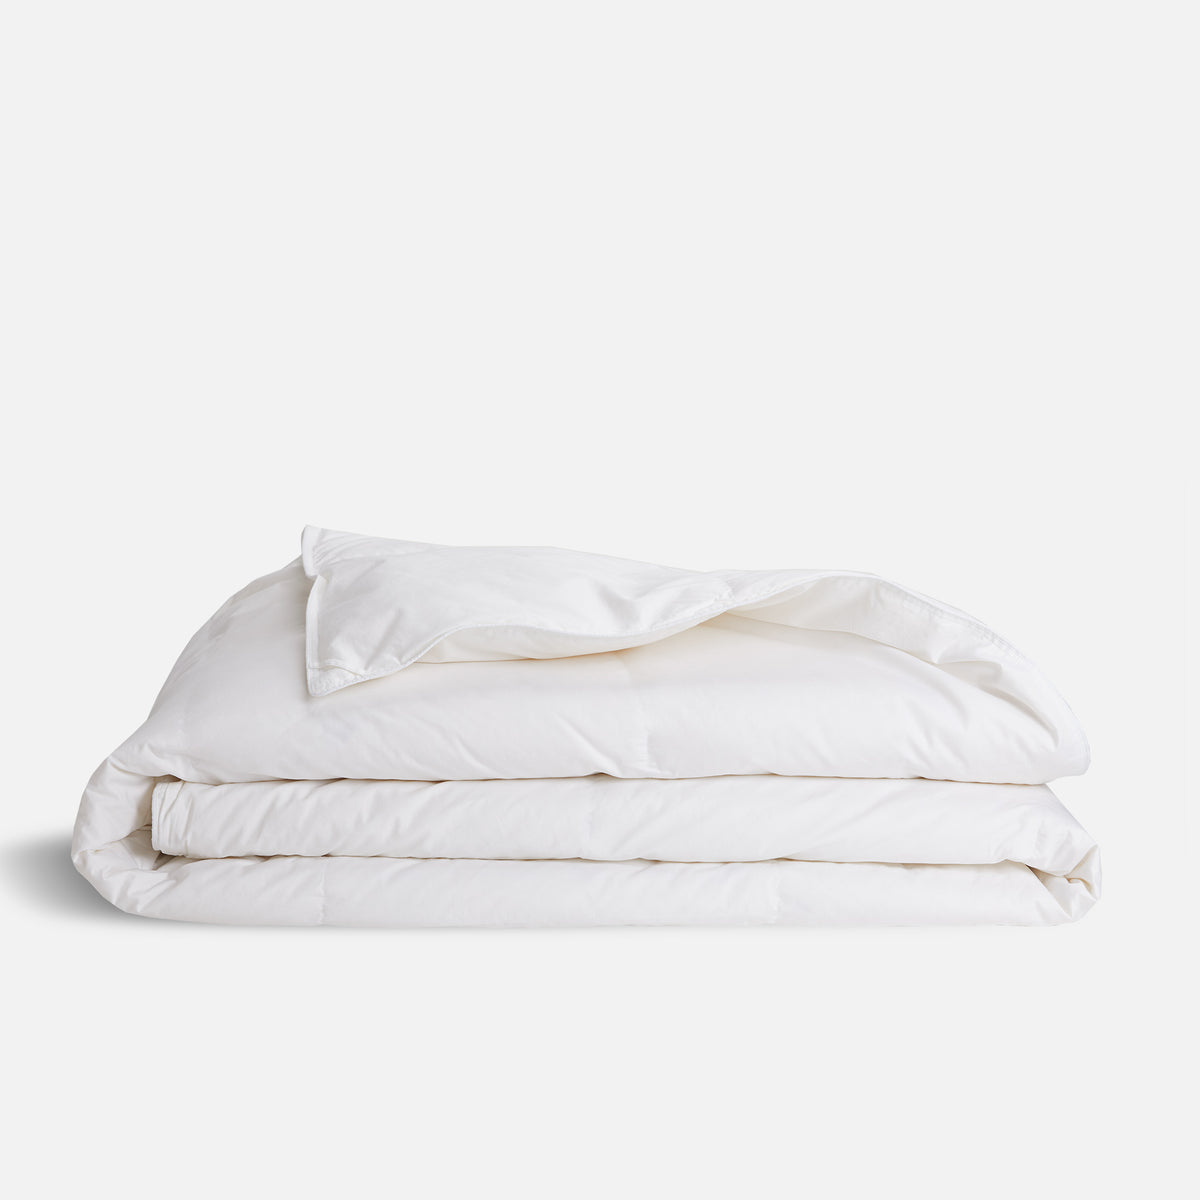 Down Comforter / Lightweight